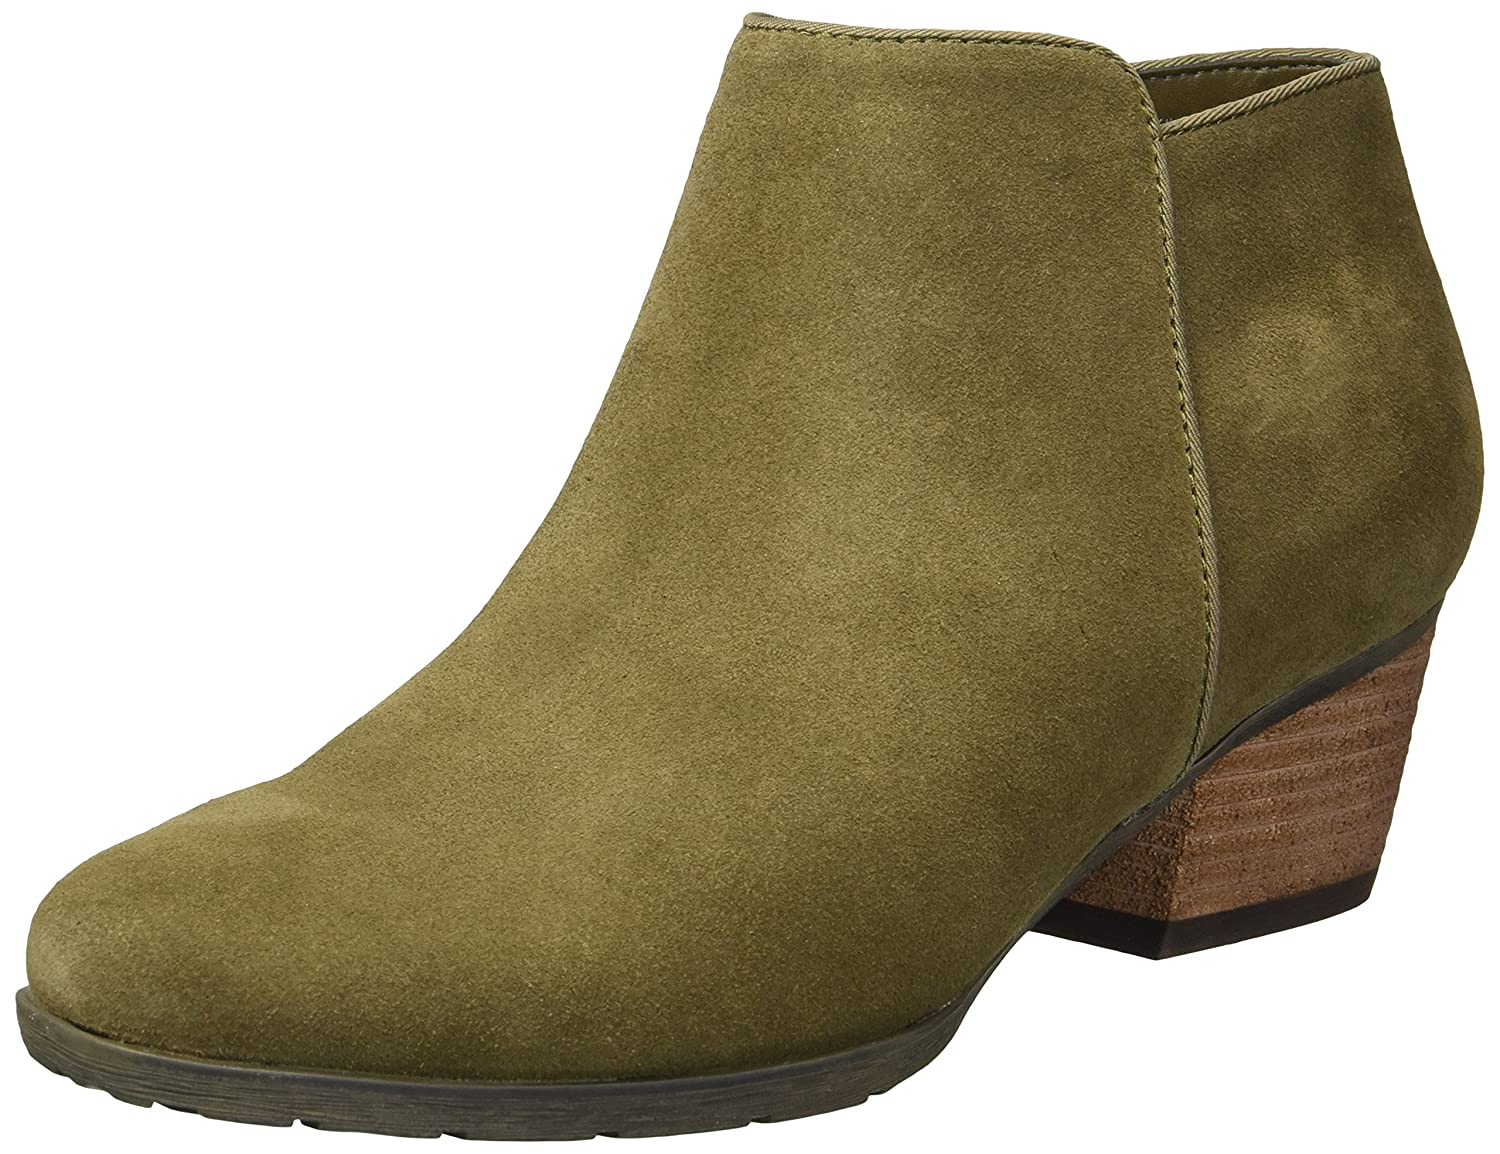 Blondo Women's Villa Ankle Boot Suede B07BQ59X75 7 B(M) US|Olive Suede Boot 057b96